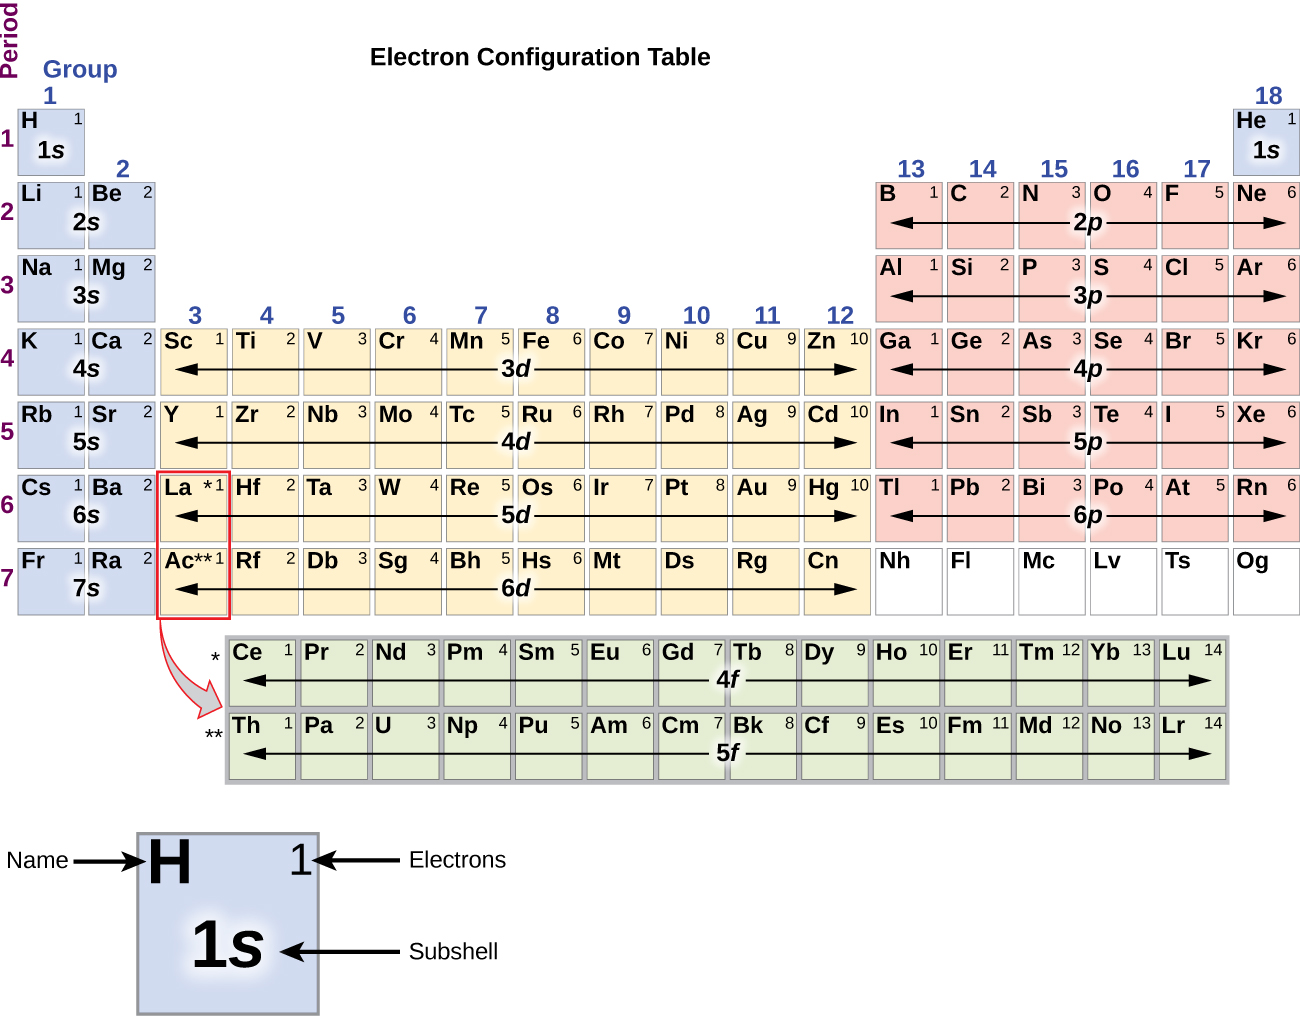 """In this figure, a periodic table is shown that is entitled, """"Electron Configuration Table."""" Beneath the table, a square for the element hydrogen is shown enlarged to provide detail. The element symbol, H, is placed in the upper left corner. In the upper right is the number of electrons, 1. The lower central portion of the element square contains the subshell, 1s. Helium and elements in groups 1 and 2 are shaded blue. In this region, the rows are labeled 1s through 7s moving down the table. Groups 3 through 12 are shaded orange, and the rows are labeled 3d through 6d moving down the table. Groups 13 through 18, except helium, are shaded pink and are labeled 2p through 6p moving down the table. The lanthanide and actinide series across the bottom of the table are shaded grey and are labeled 4f and 5f, respectively."""